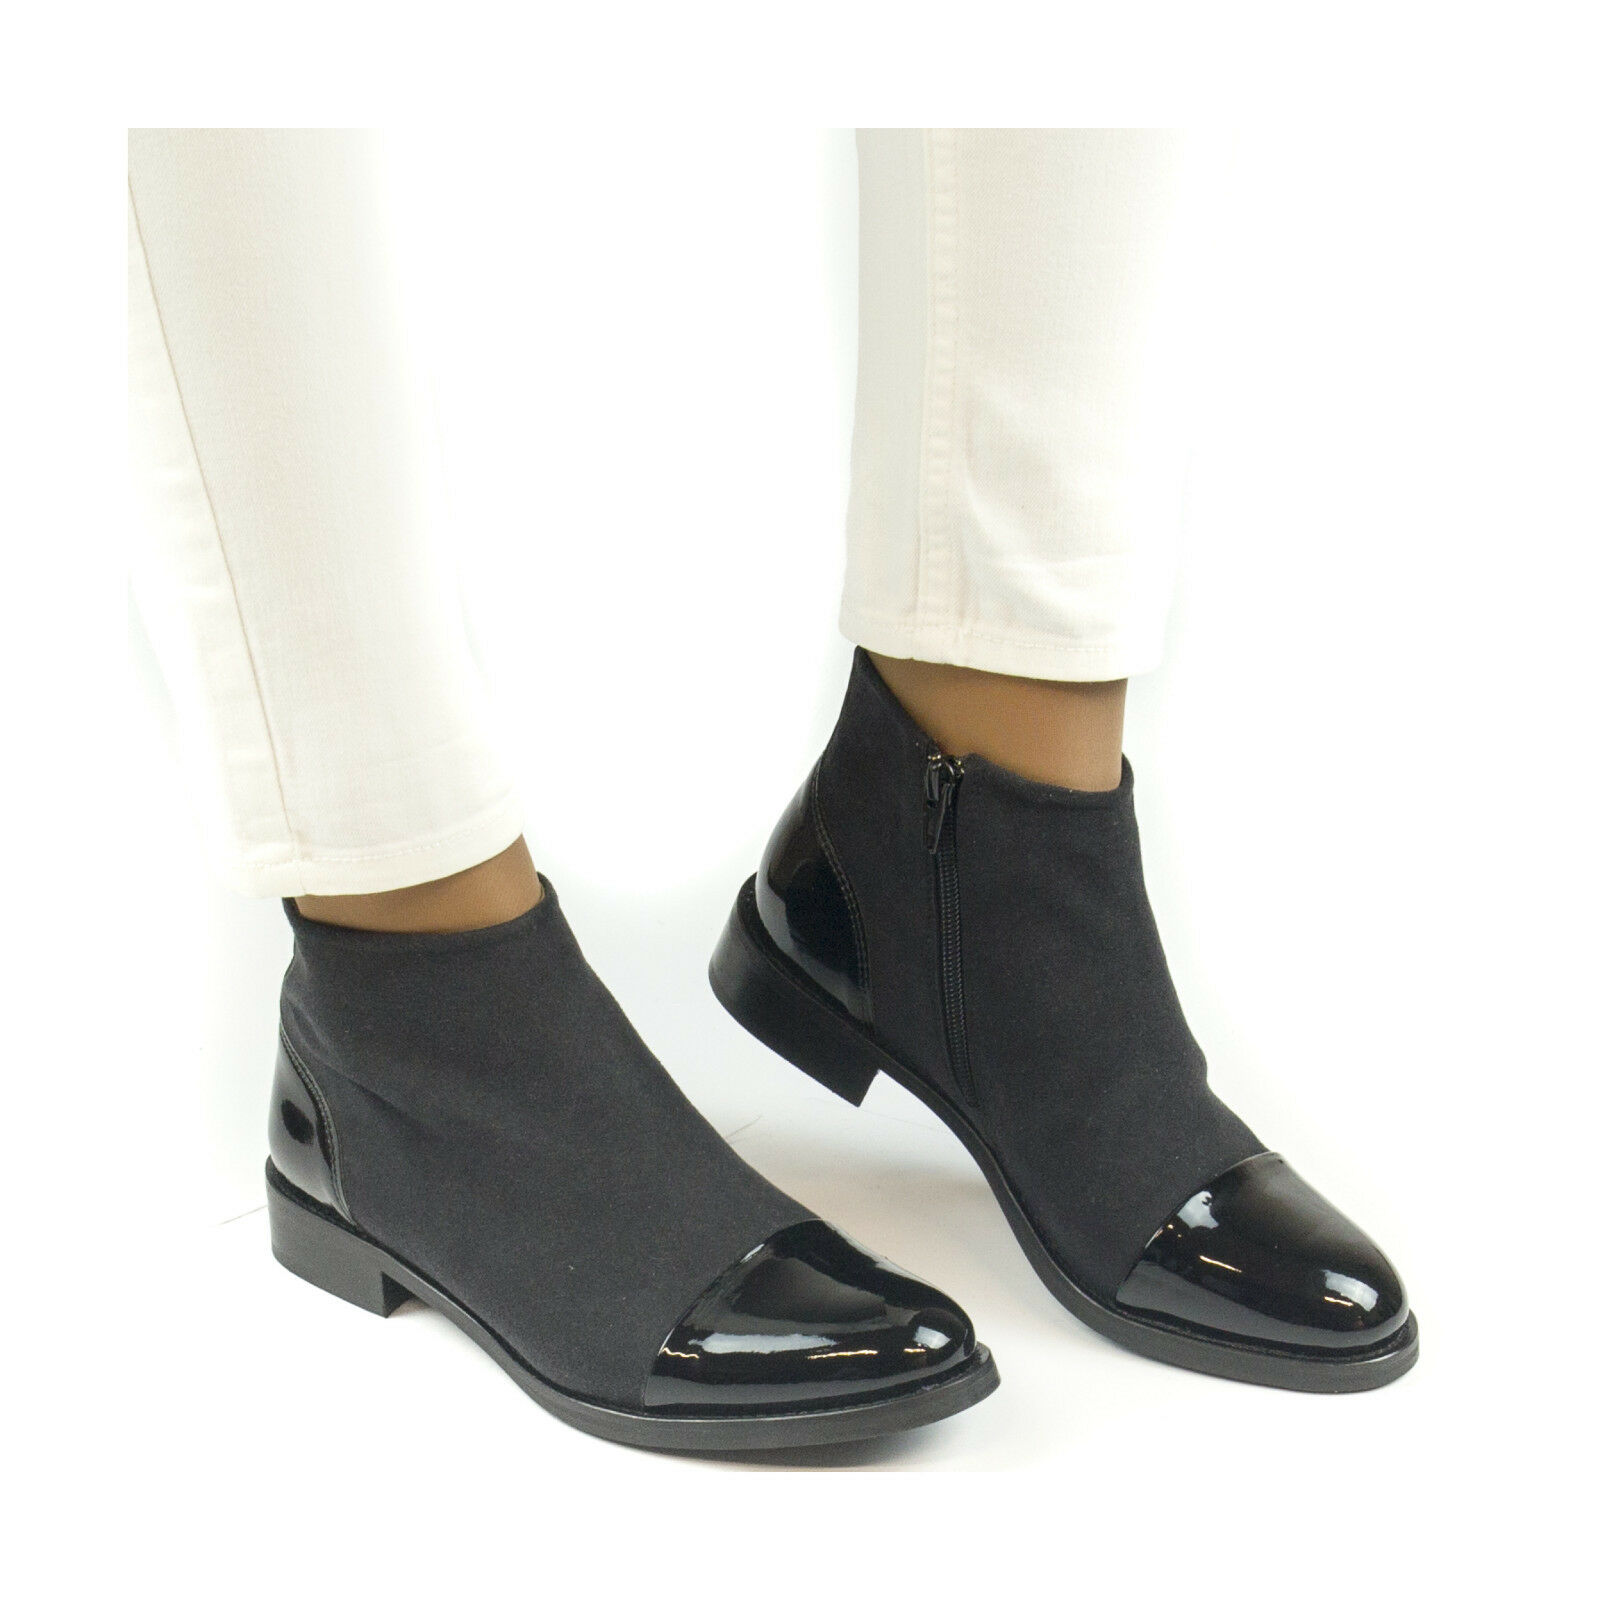 Woman vegan ankle boots with zipper, ecological ecological ecological and water resistant 6f4367